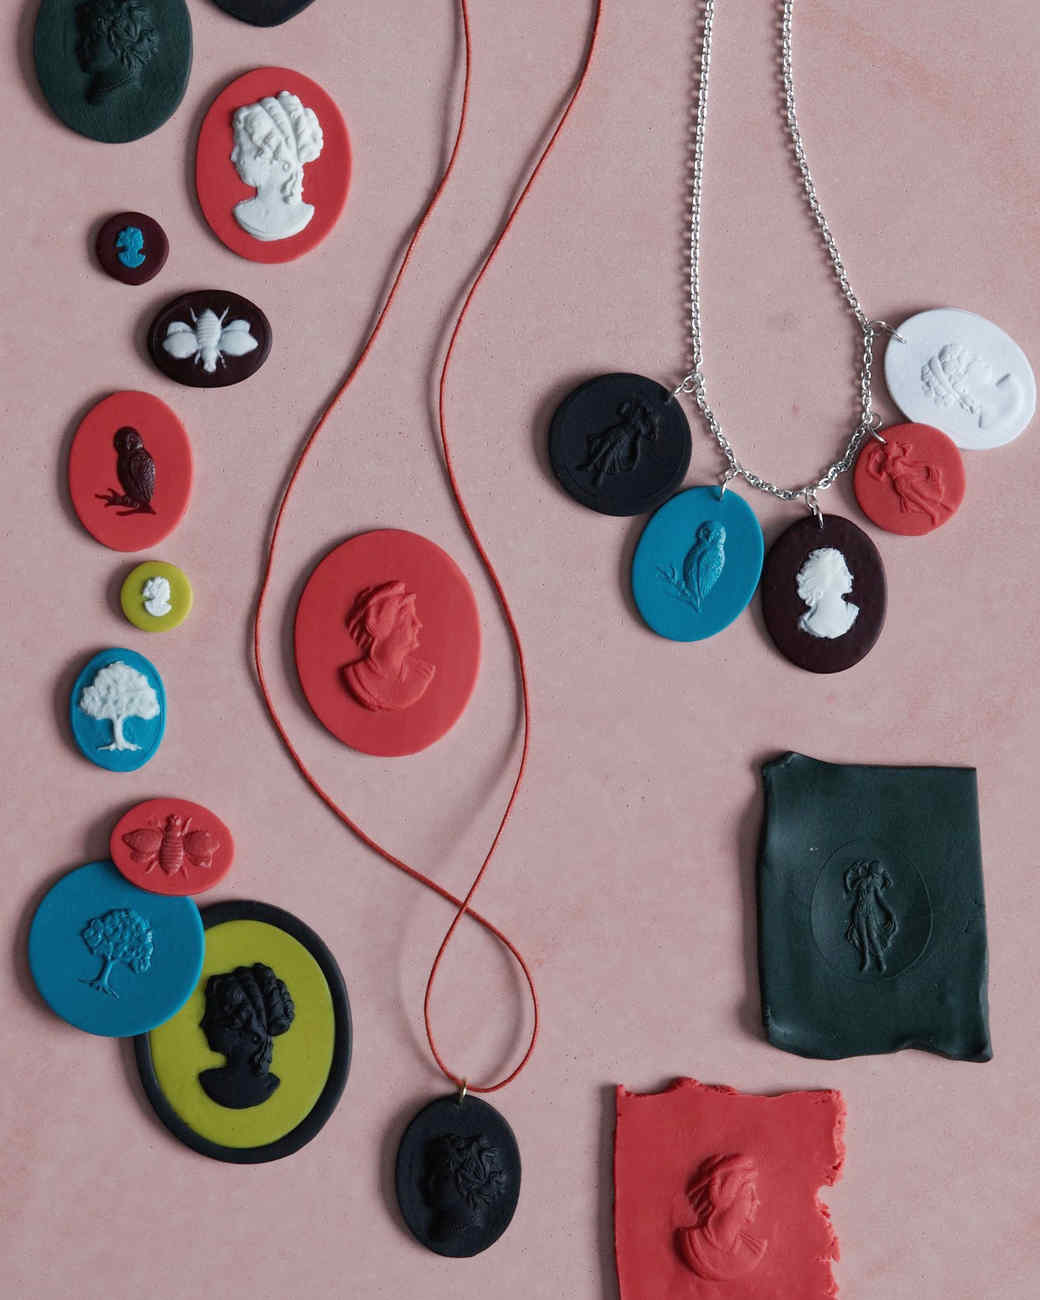 boundless-beauty-d106298_cameo-necklaces-0414.jpg